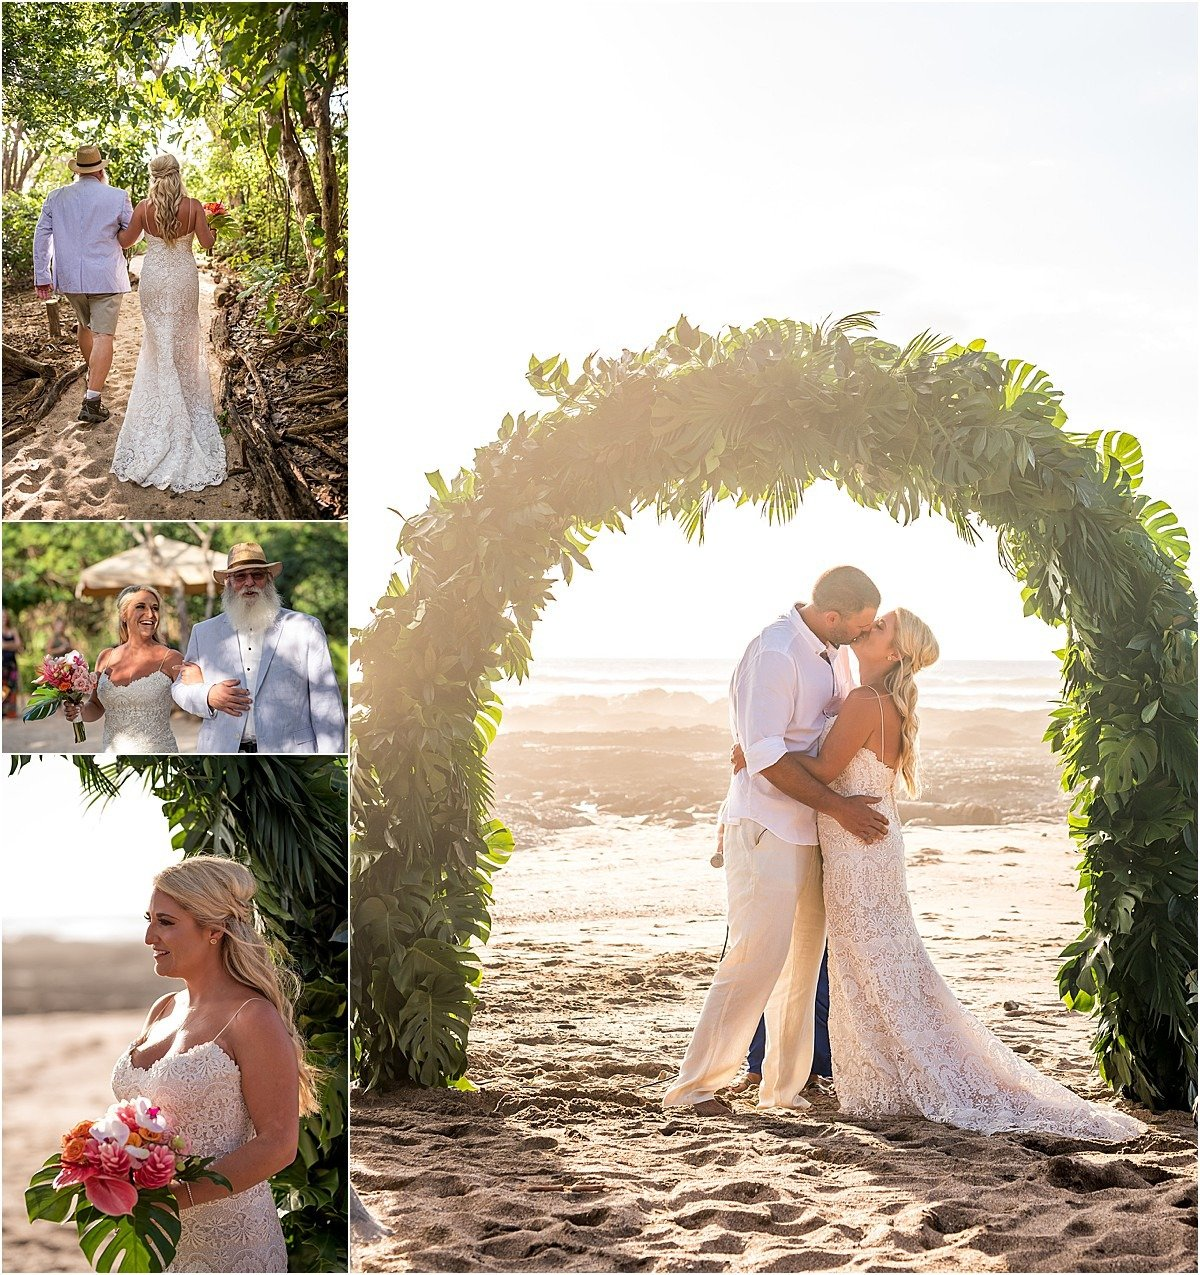 ceremony on the beaches on Costa Rica